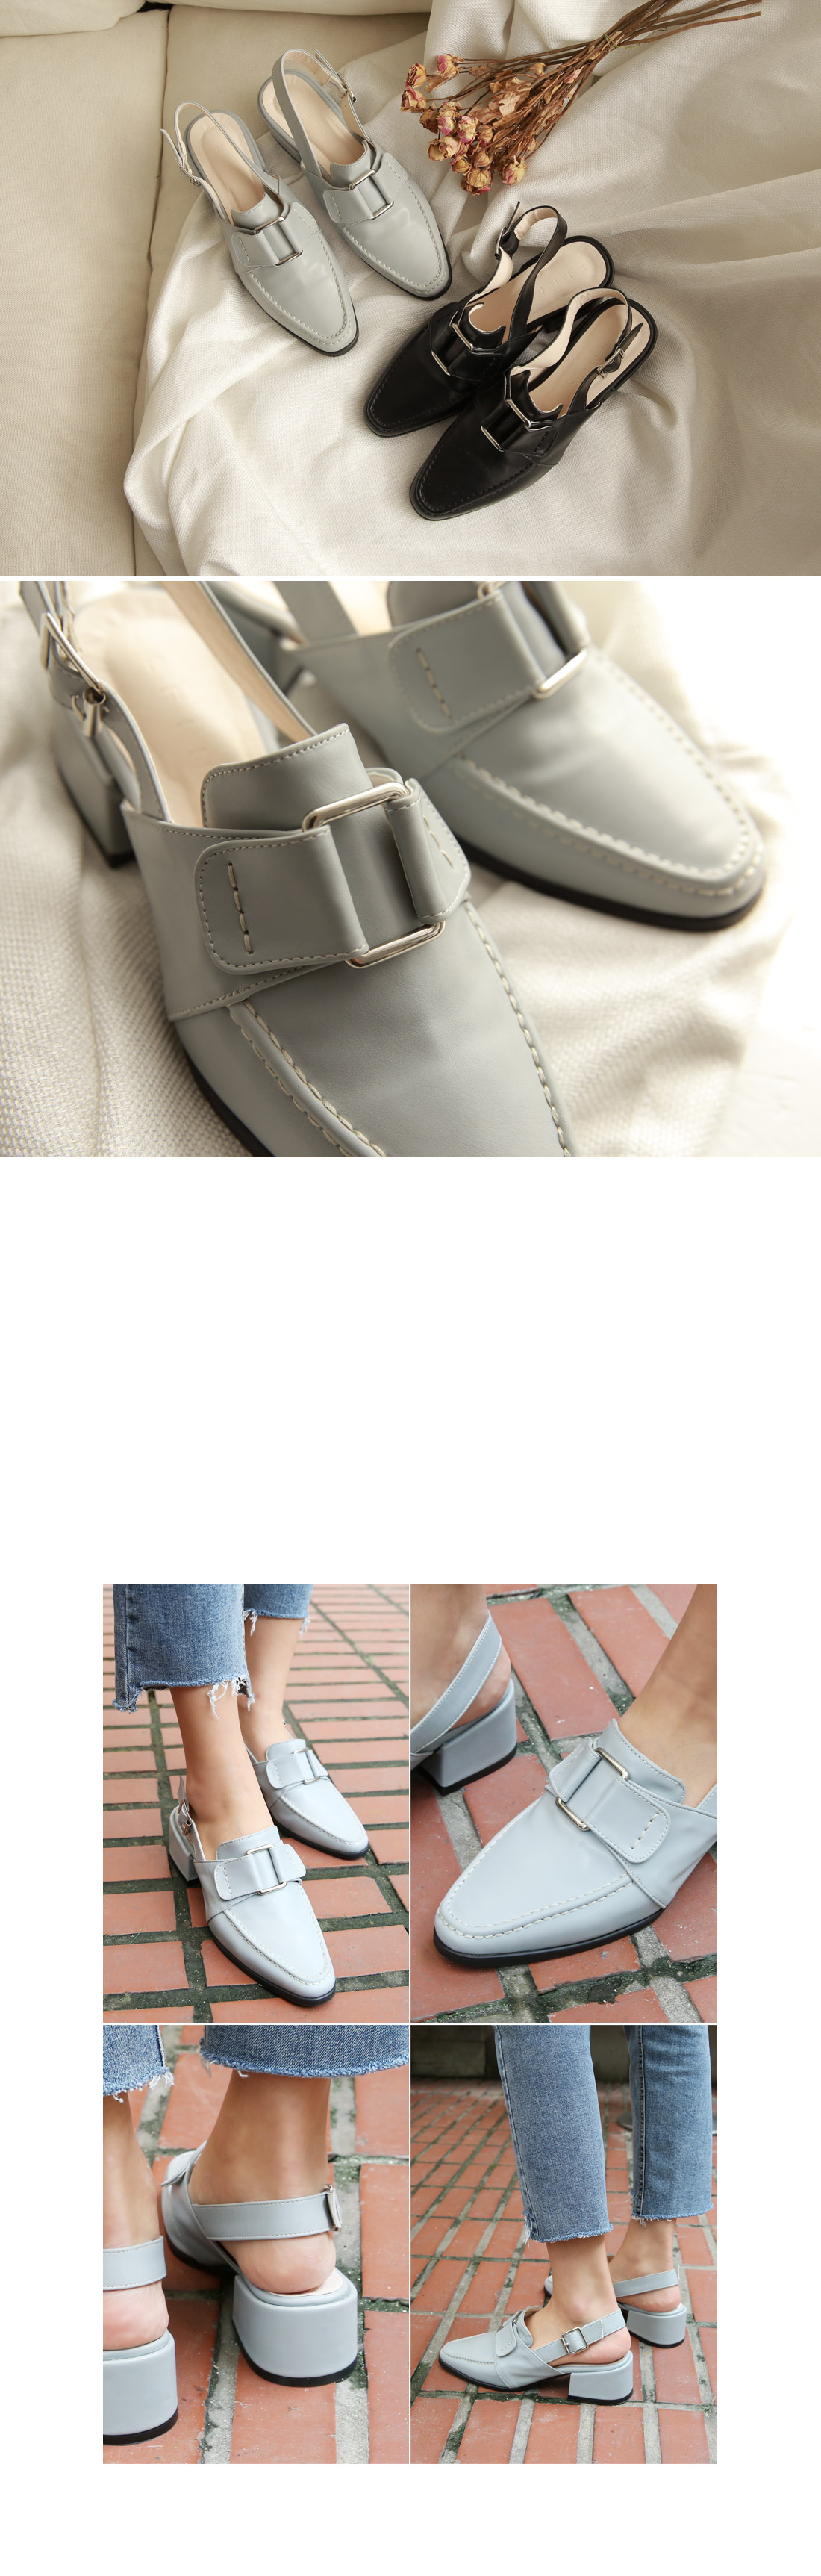 Each buckle shoes